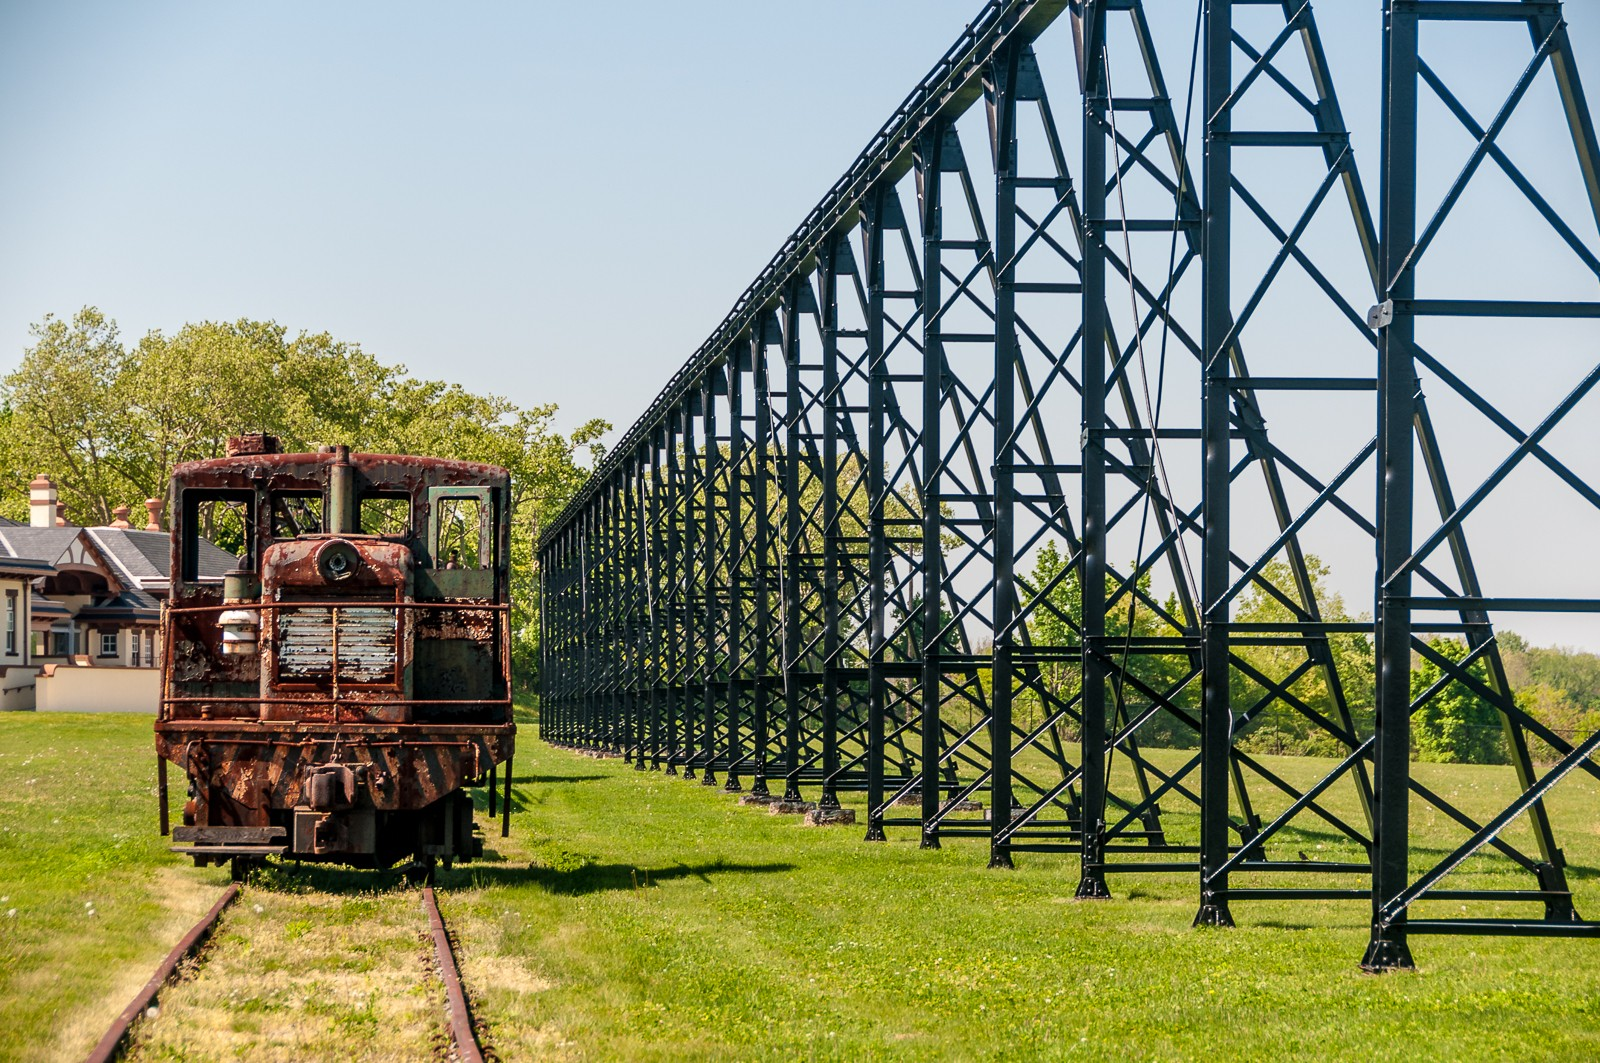 rust-train-roebling-7584